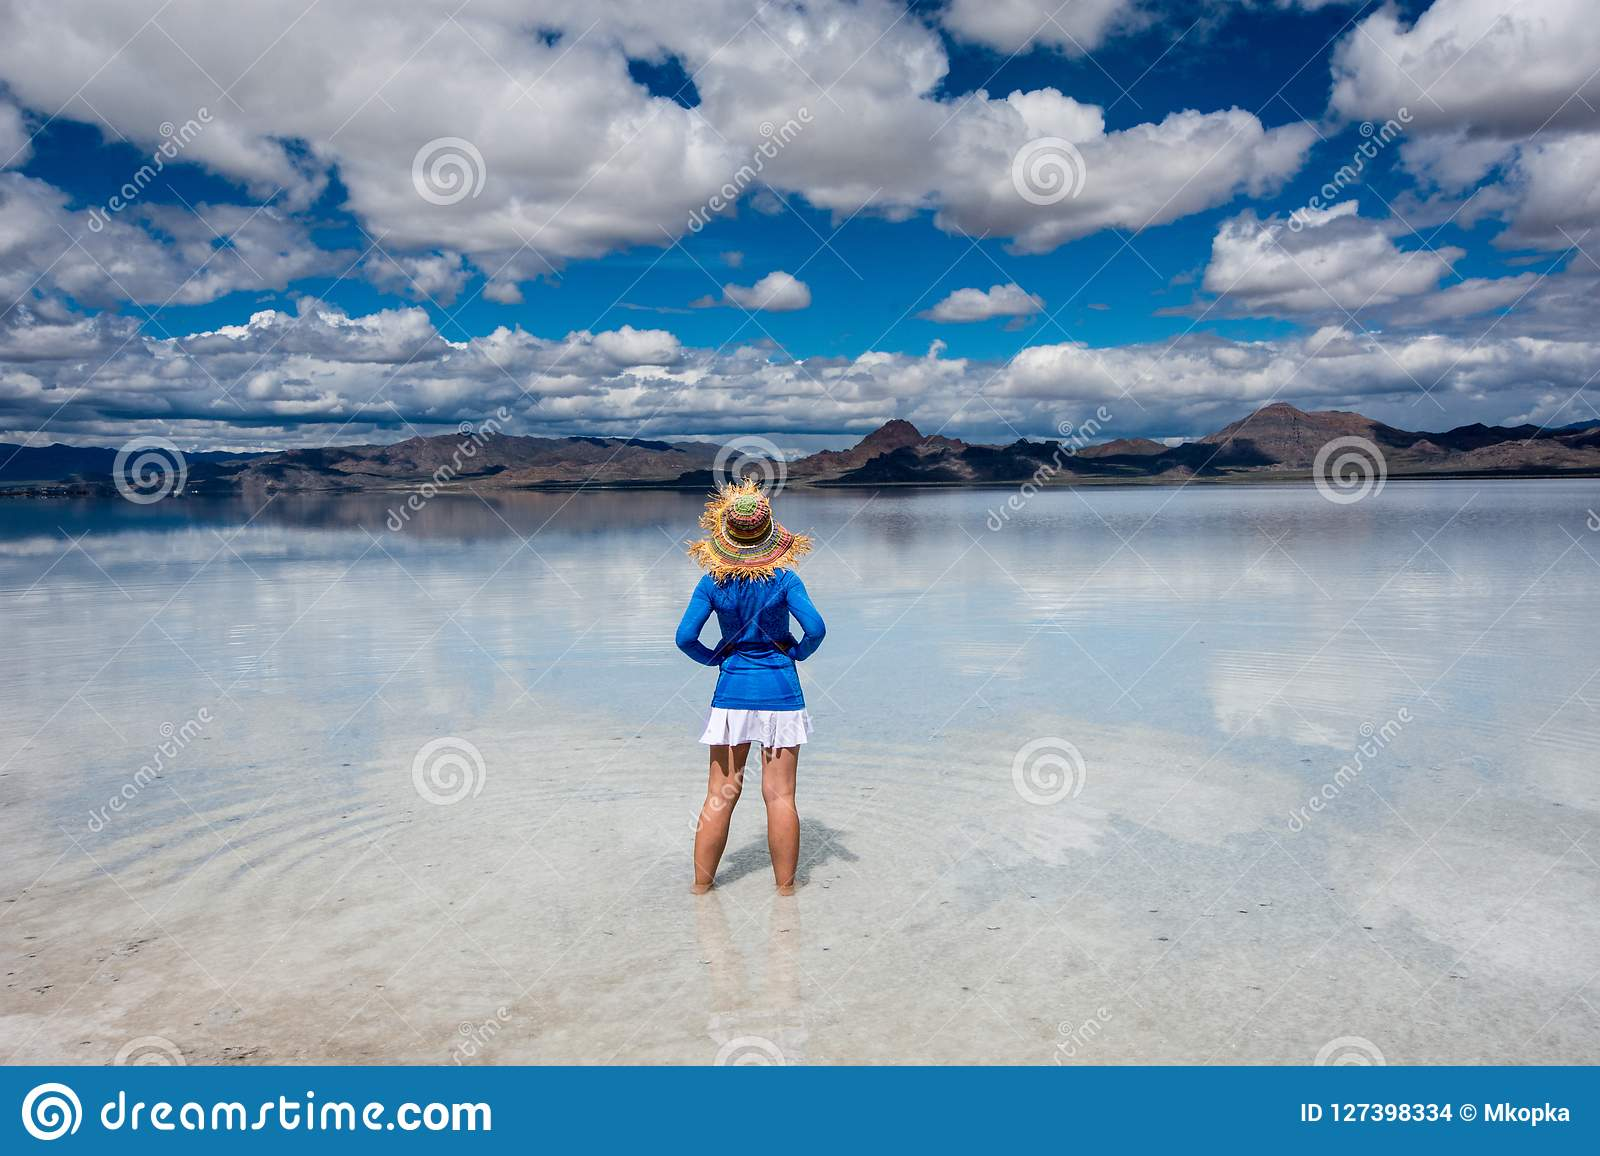 Adult female wears a straw hat posing at the Bonneville Salt Flats in Western Utah